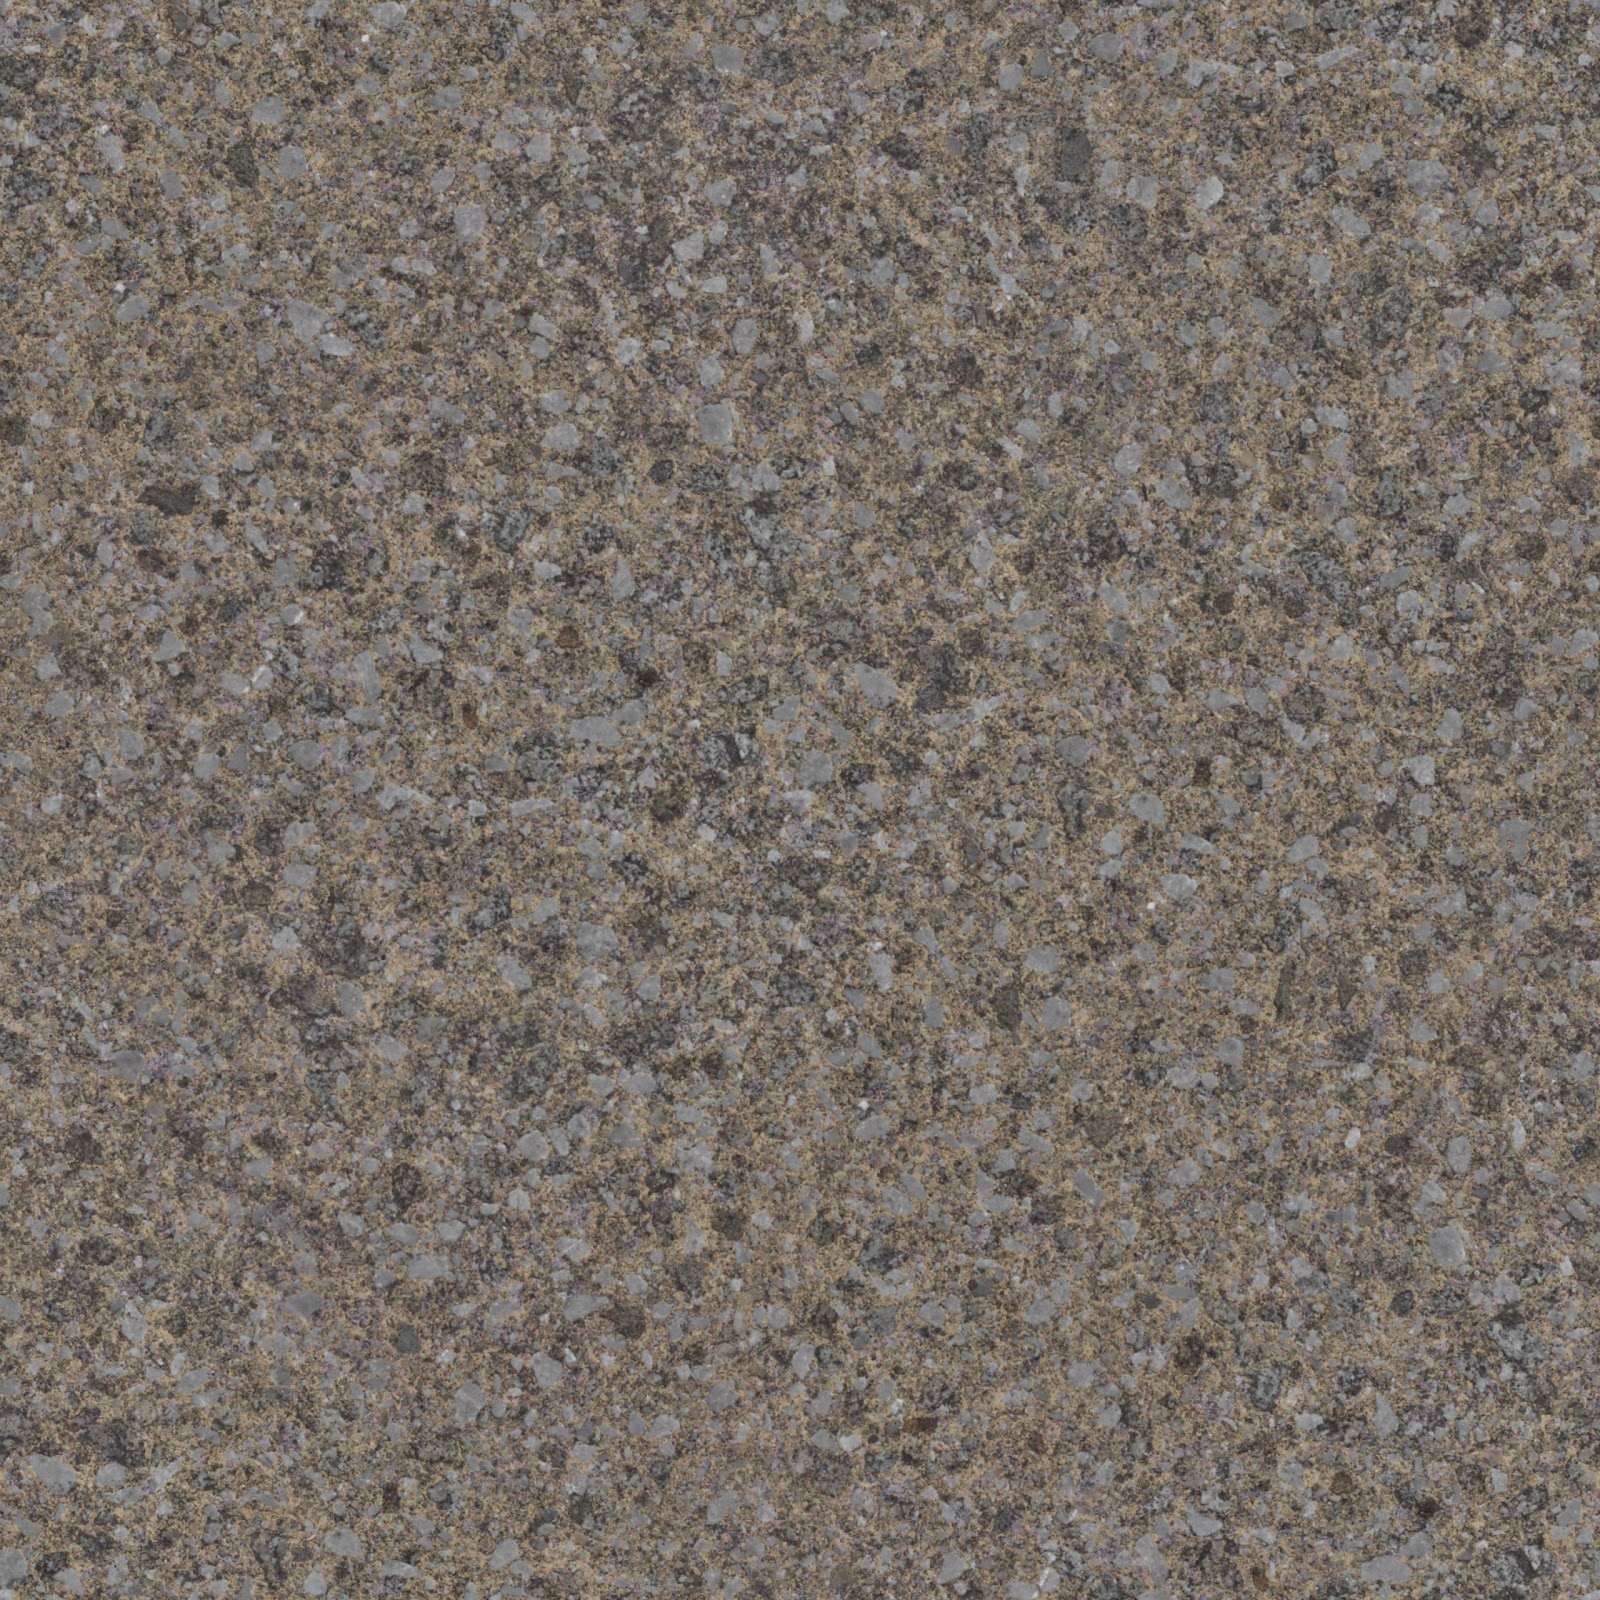 Seamless concrete ground floor pathway texture 2048x2048